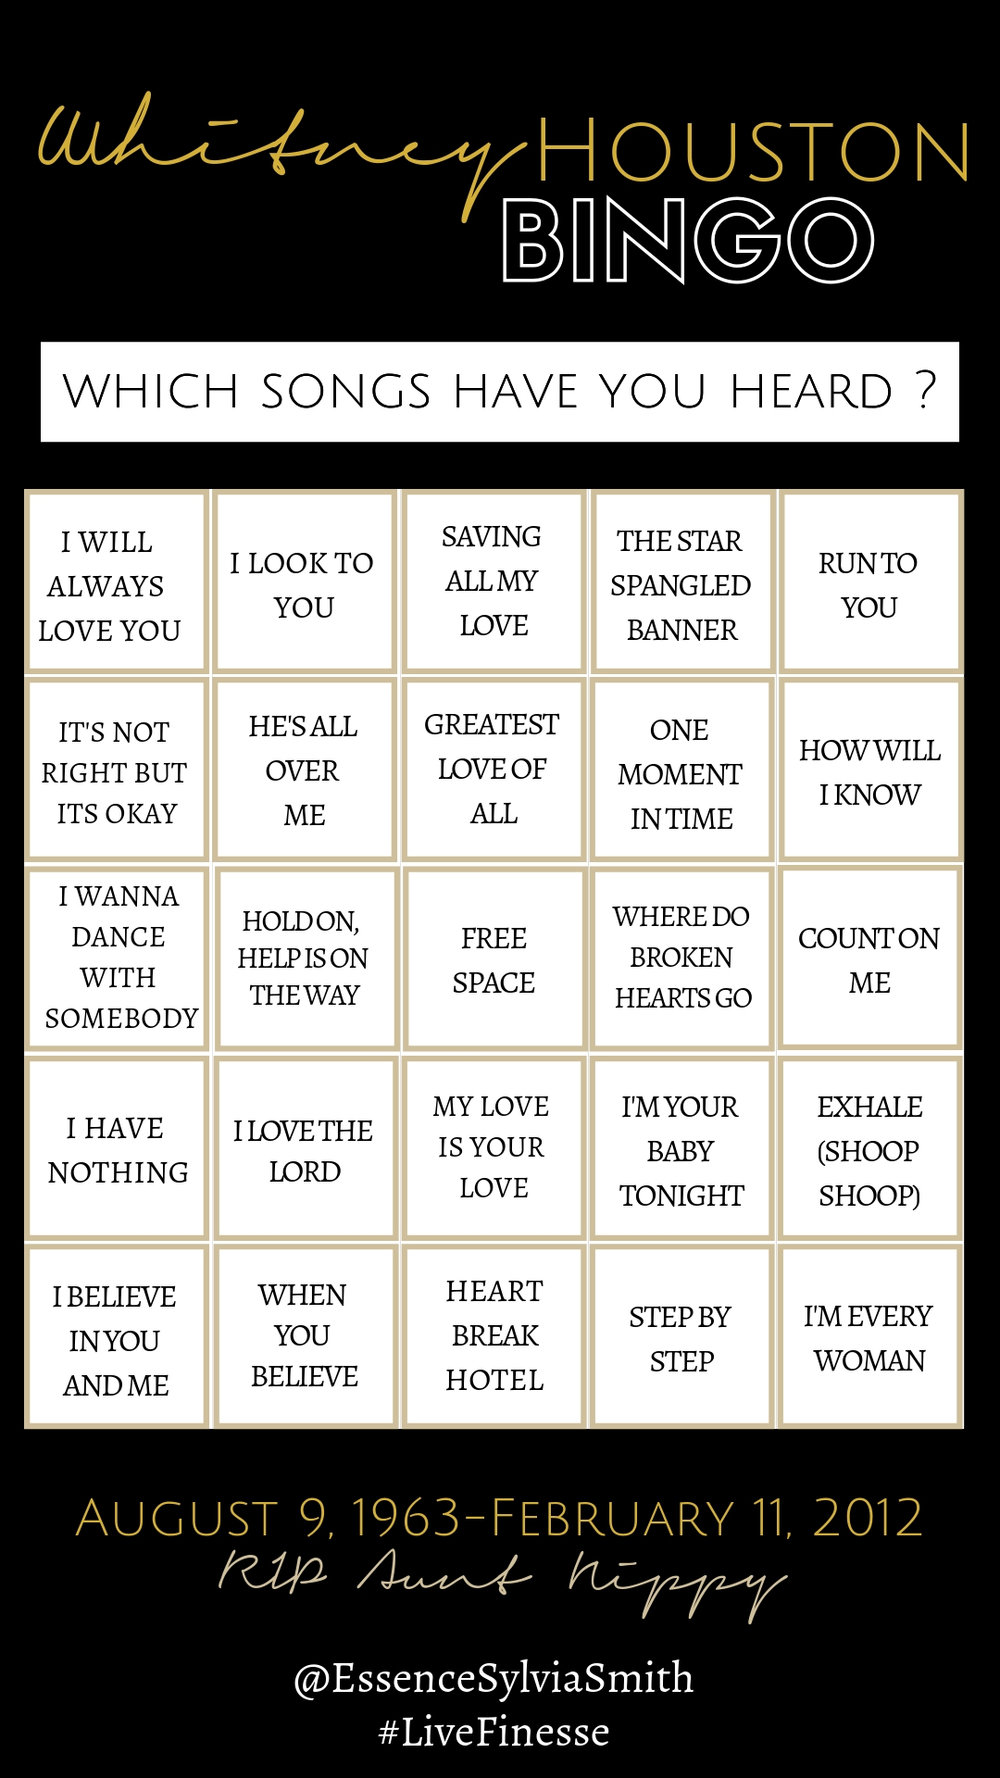 Whitney Houston Bingo(1).jpg